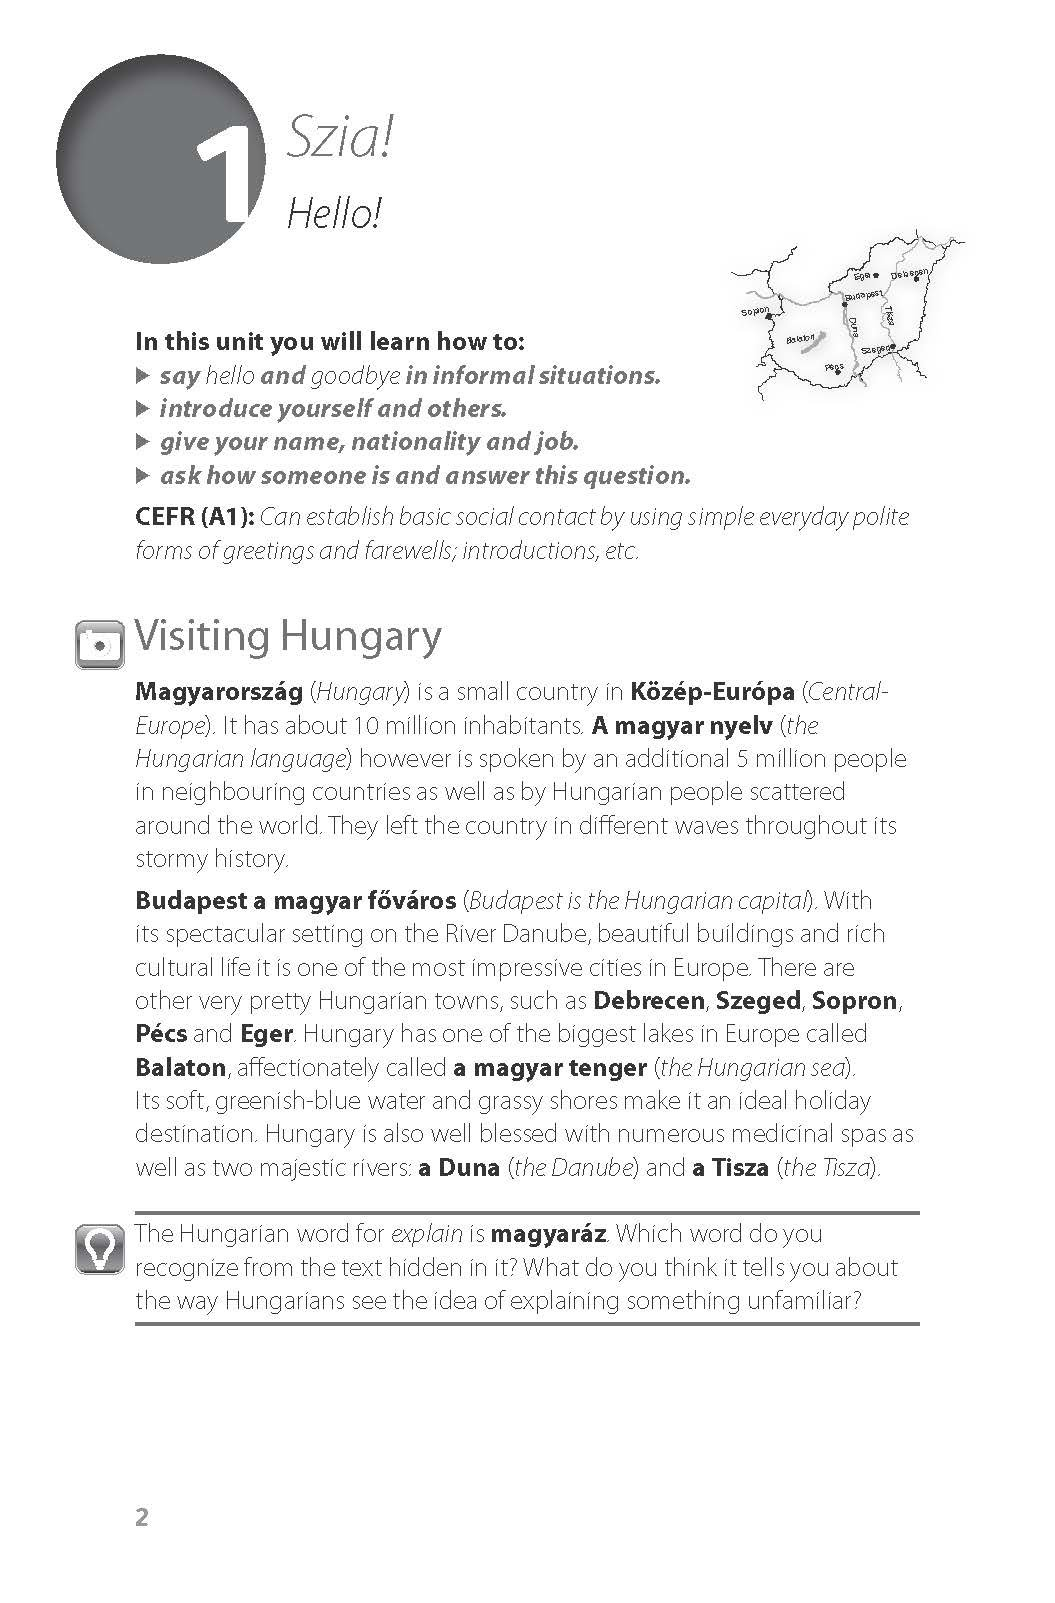 Get started in hungarian absolute beginner course the essential get started in hungarian absolute beginner course the essential introduction to reading writing speaking and understanding a new language teach m4hsunfo